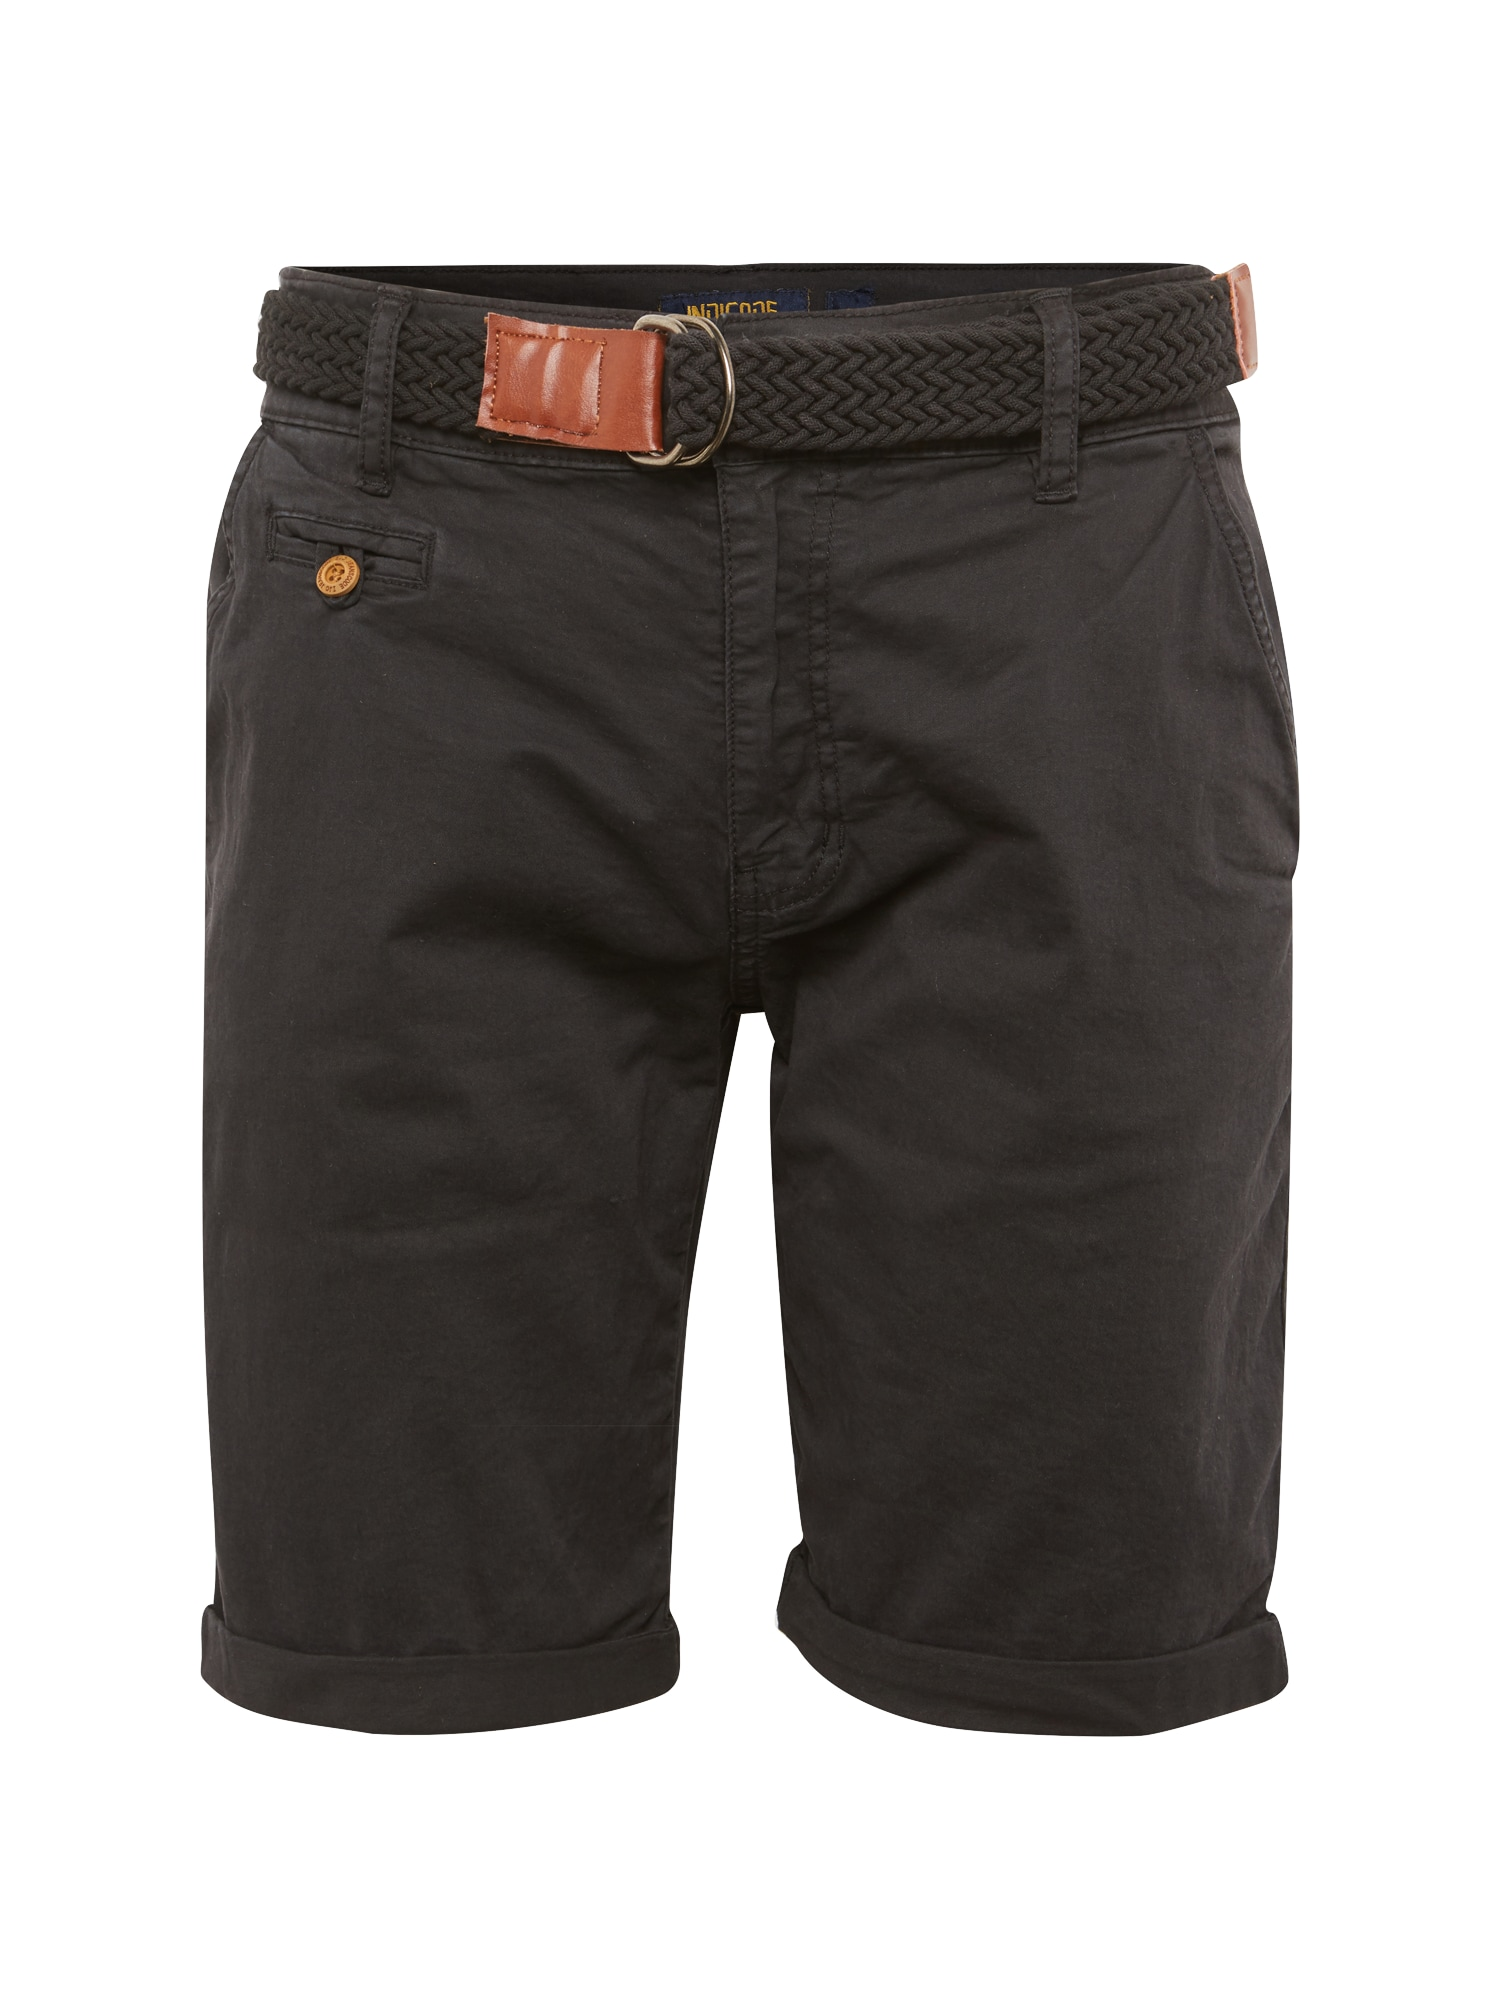 Chino kalhoty Conor antracitová INDICODE JEANS